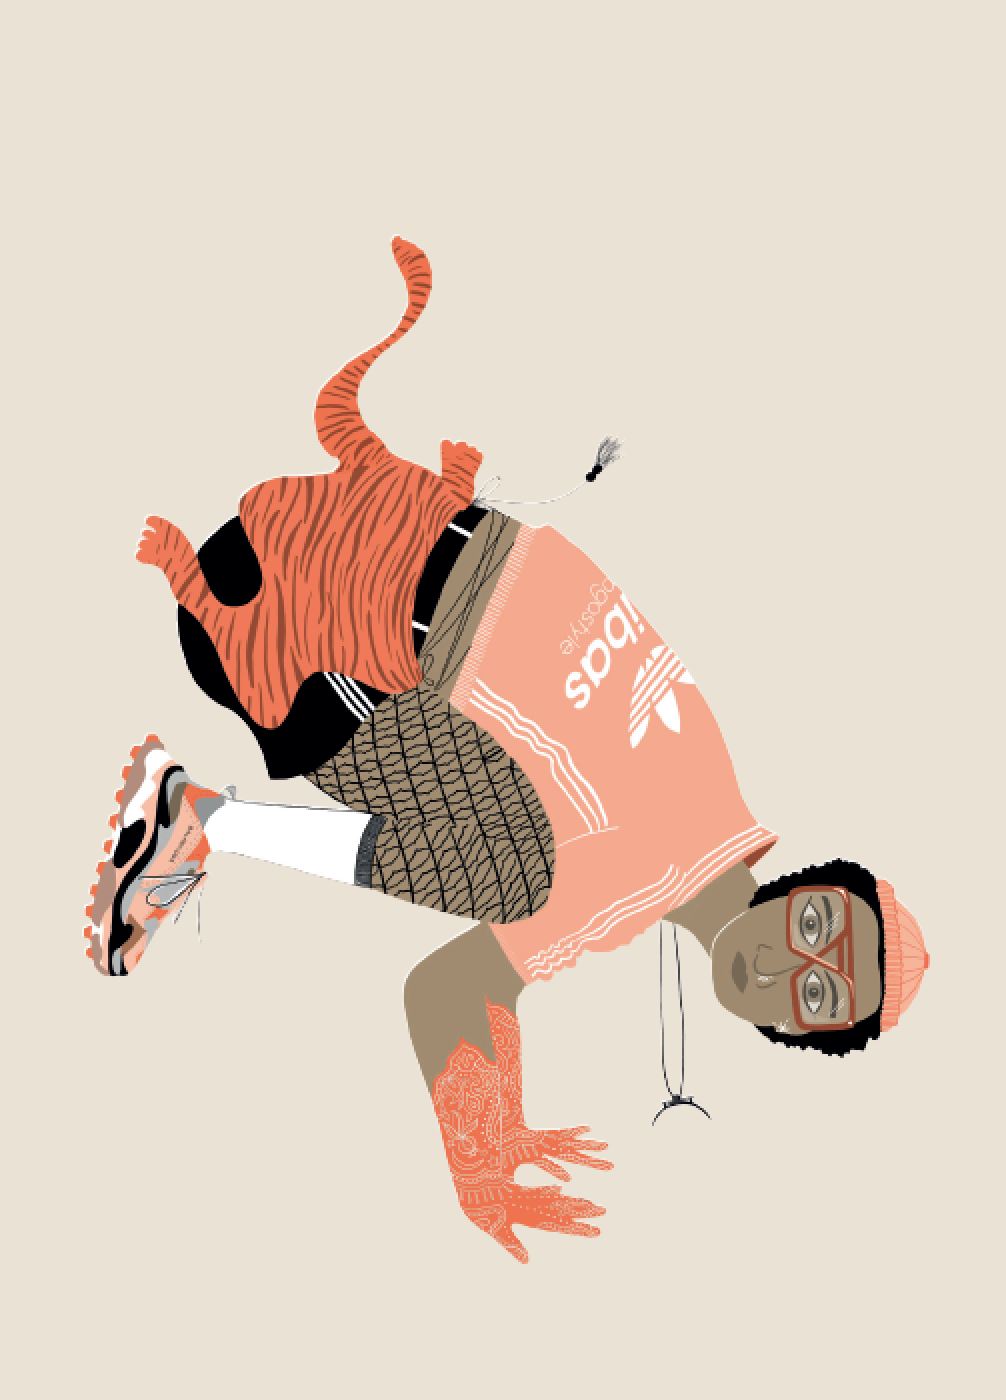 2019. Bak ā sana (Crane Pose) Digital print on paper 5 in. x 7 in.  Practiced wearing a bootlegged Adibas zip-up with coordinating Balancioga sneakers paired with white sport socks over Mughal fishnets, hand-embroidered mehndi gloves and a tigerskin wrap for ancestral protection.   Purchase